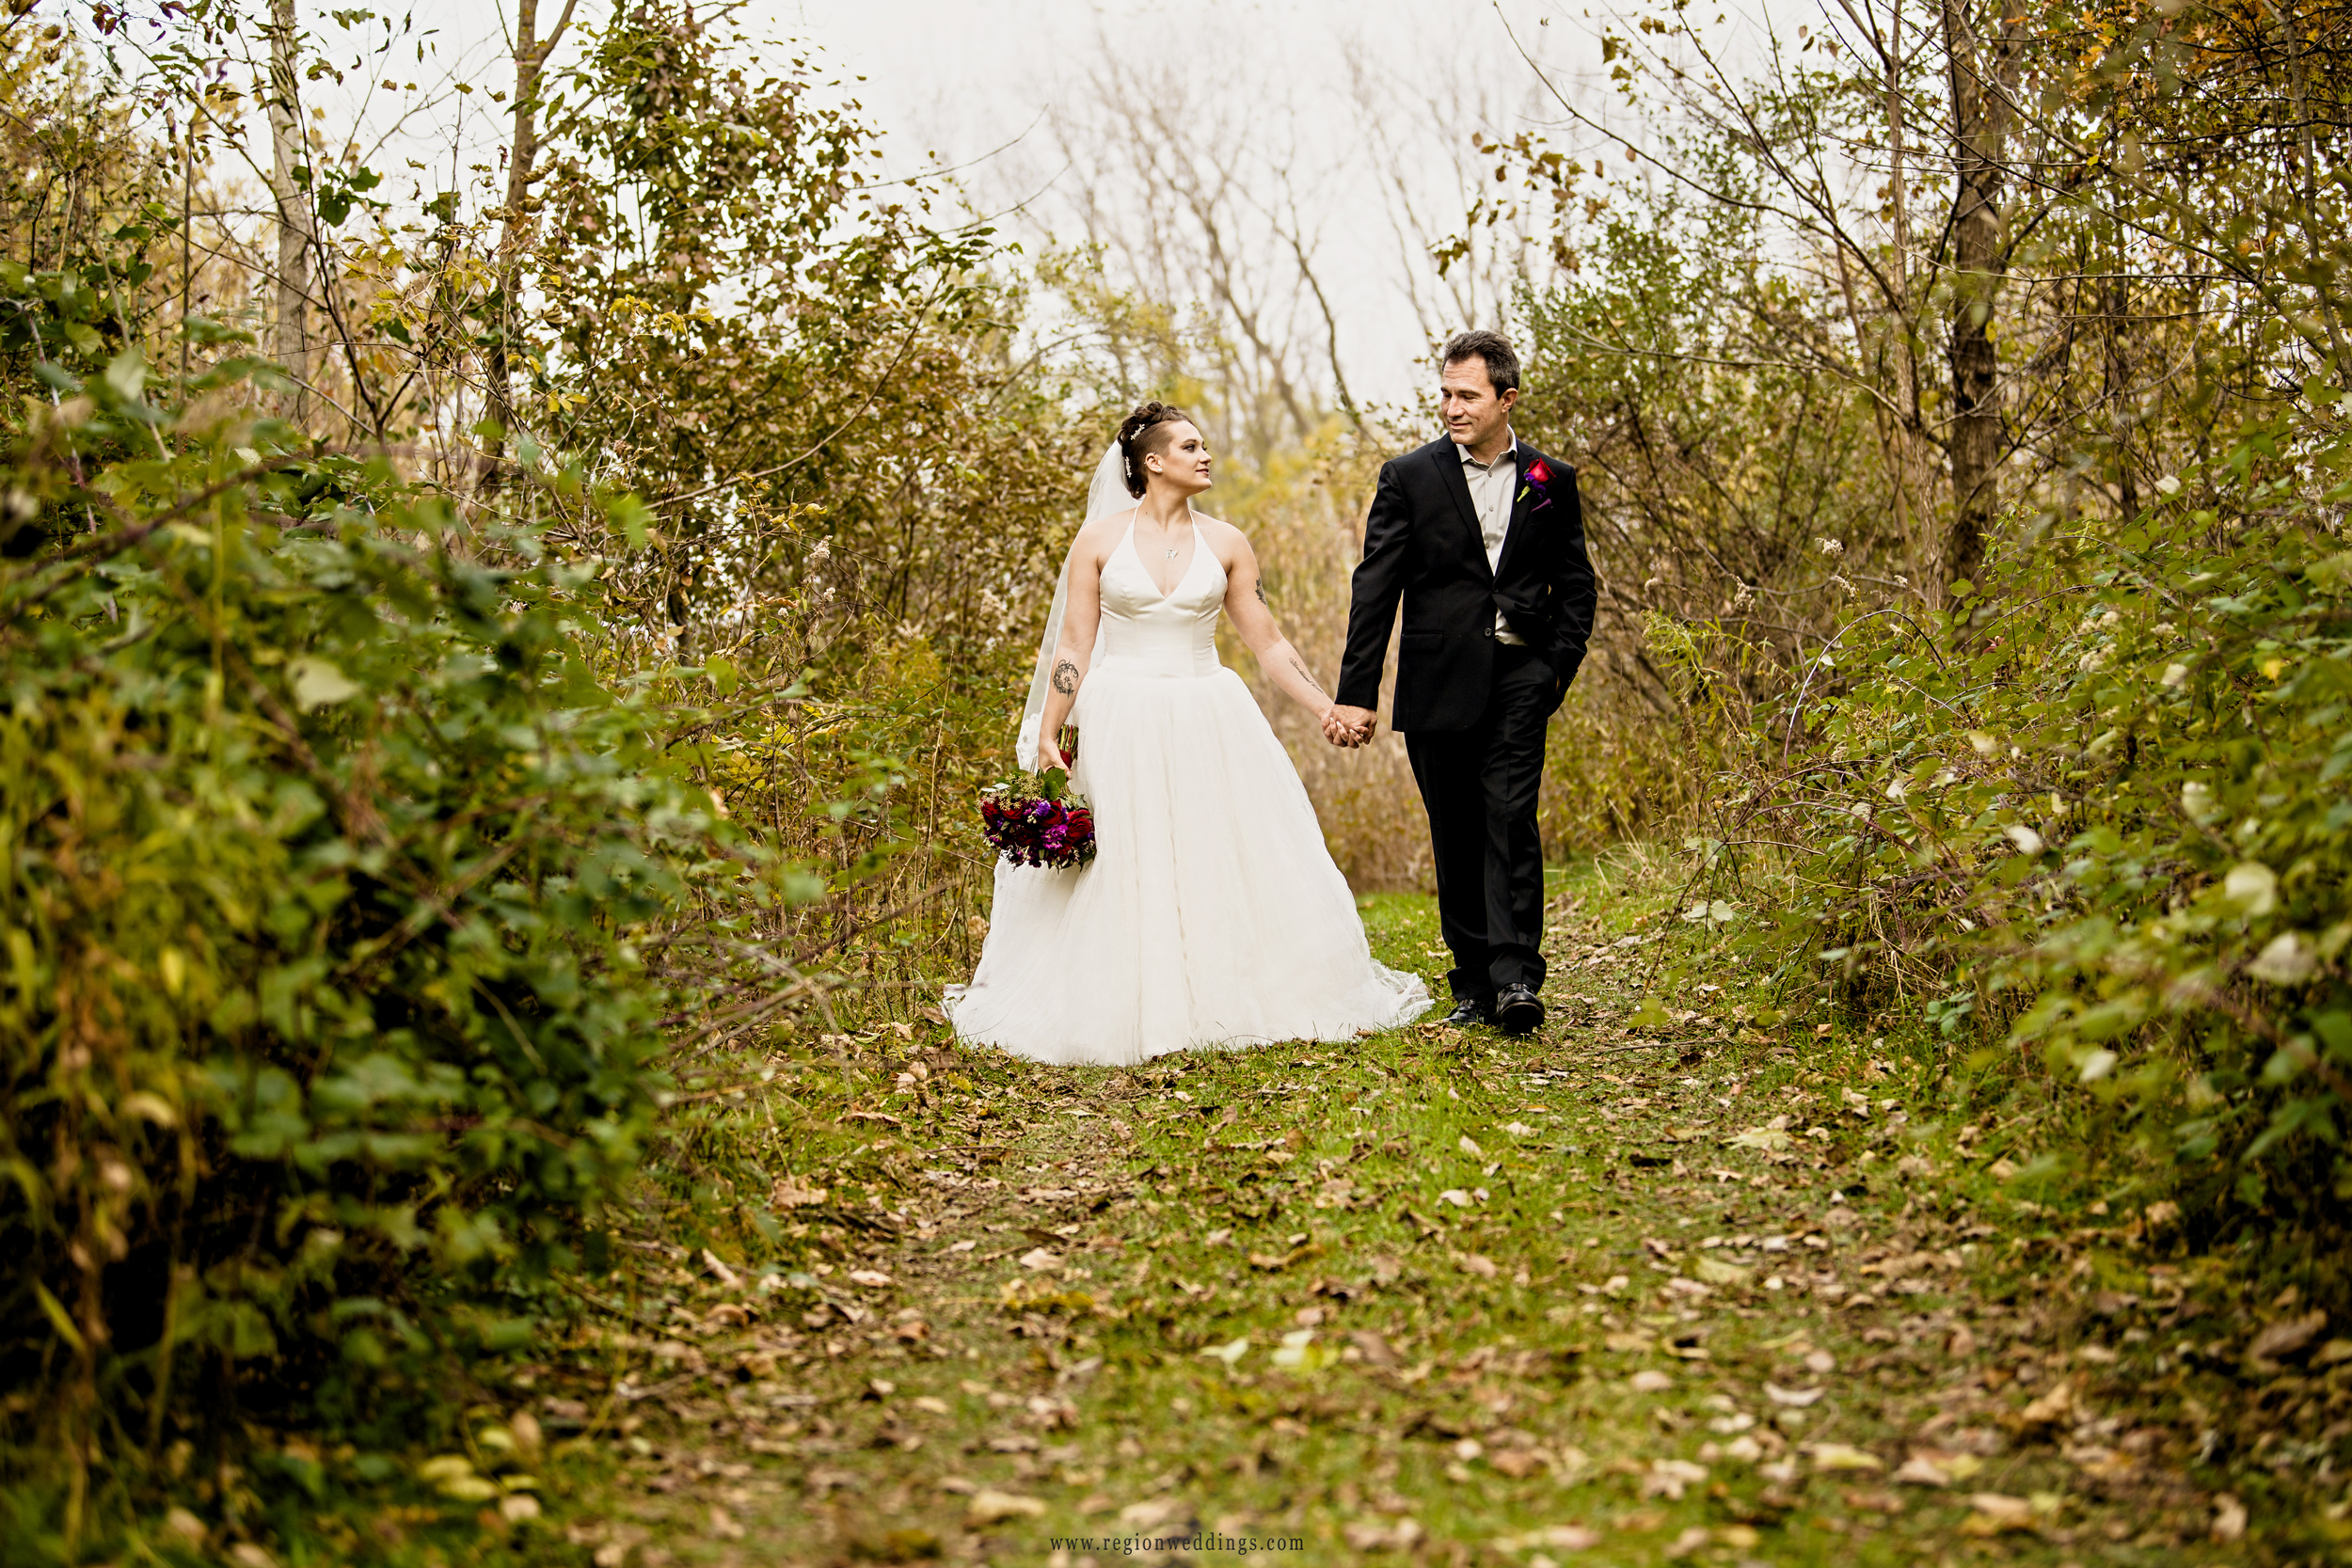 Autumn walk for the bride and groom at Sand Creek Country Club.